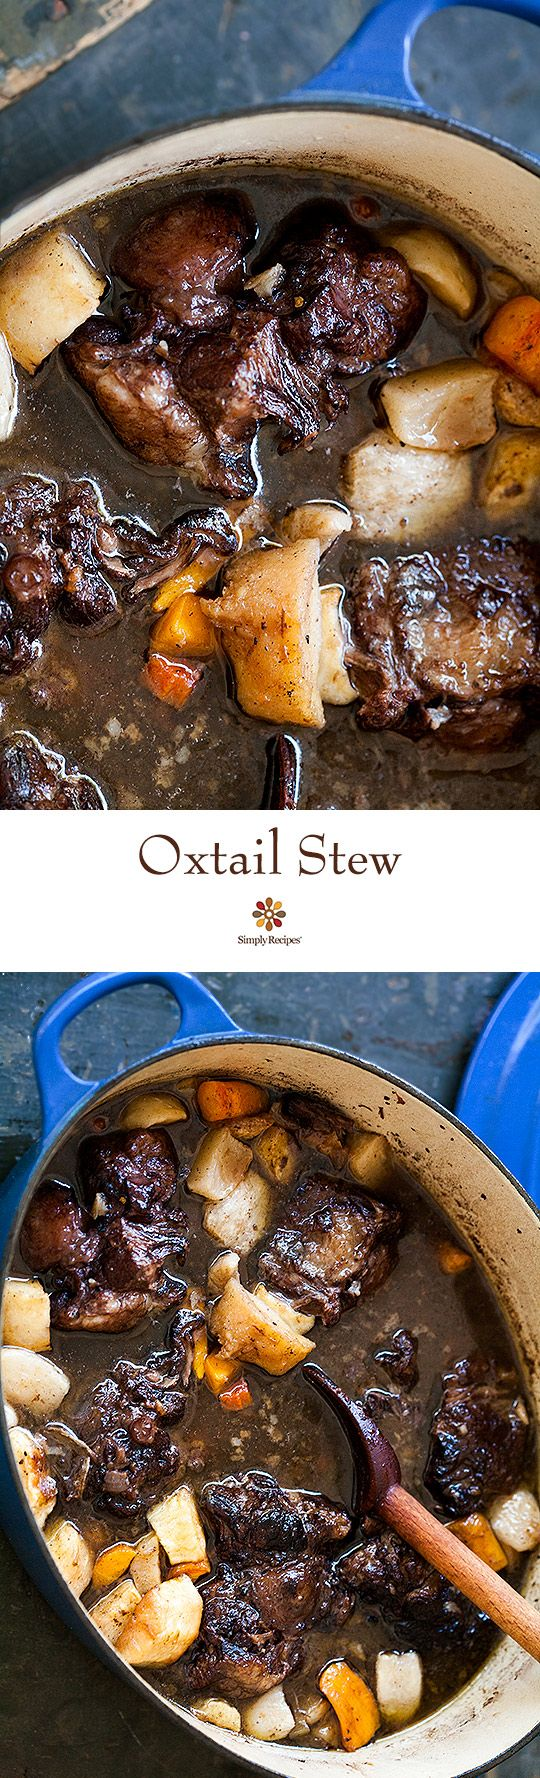 best images about jewelry on Pinterest Fit bit Oxtail stew and